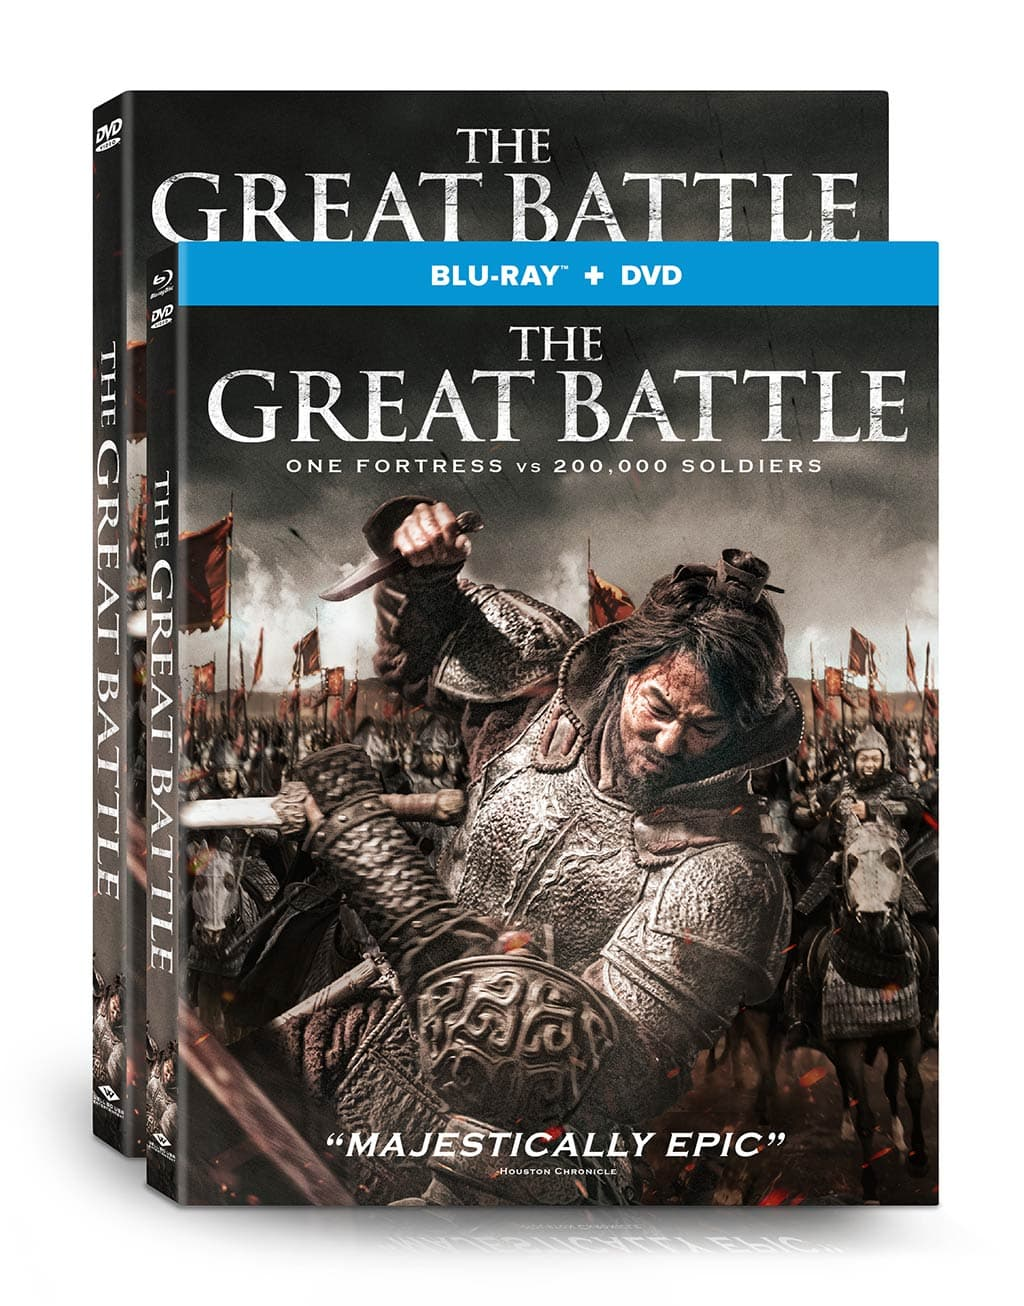 The Great Battle Review - OC Movie Reviews - Movie Reviews, Movie News, Documentary Reviews, Short Films, Short Film Reviews, Trailers, Movie Trailers, Interviews, film reviews, film news, hollywood, indie films, documentaries, TV shows